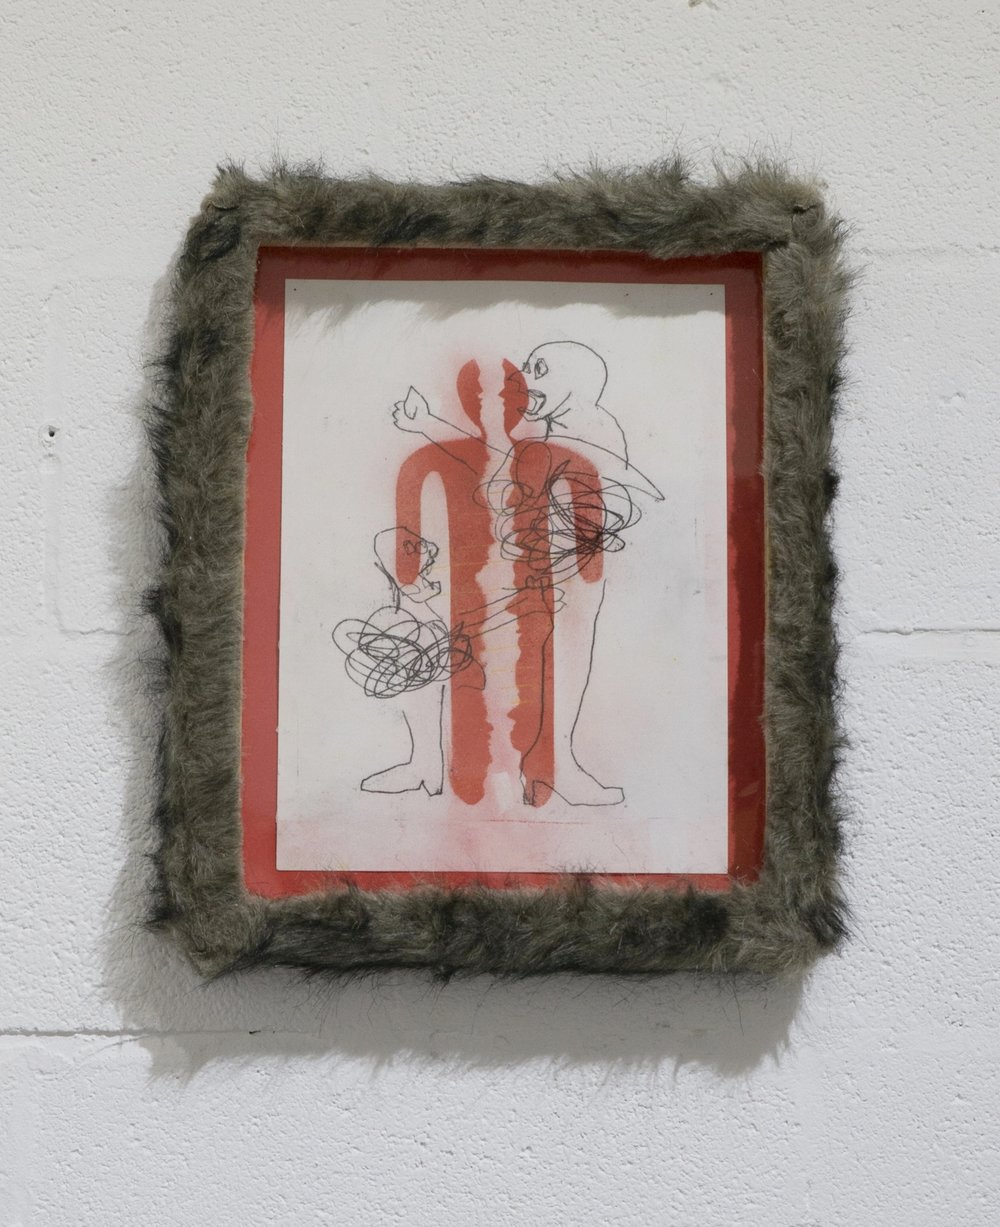 The Declarer Declares     Matt Christy   Pastel on paper in artist's fur-covered frame  2015